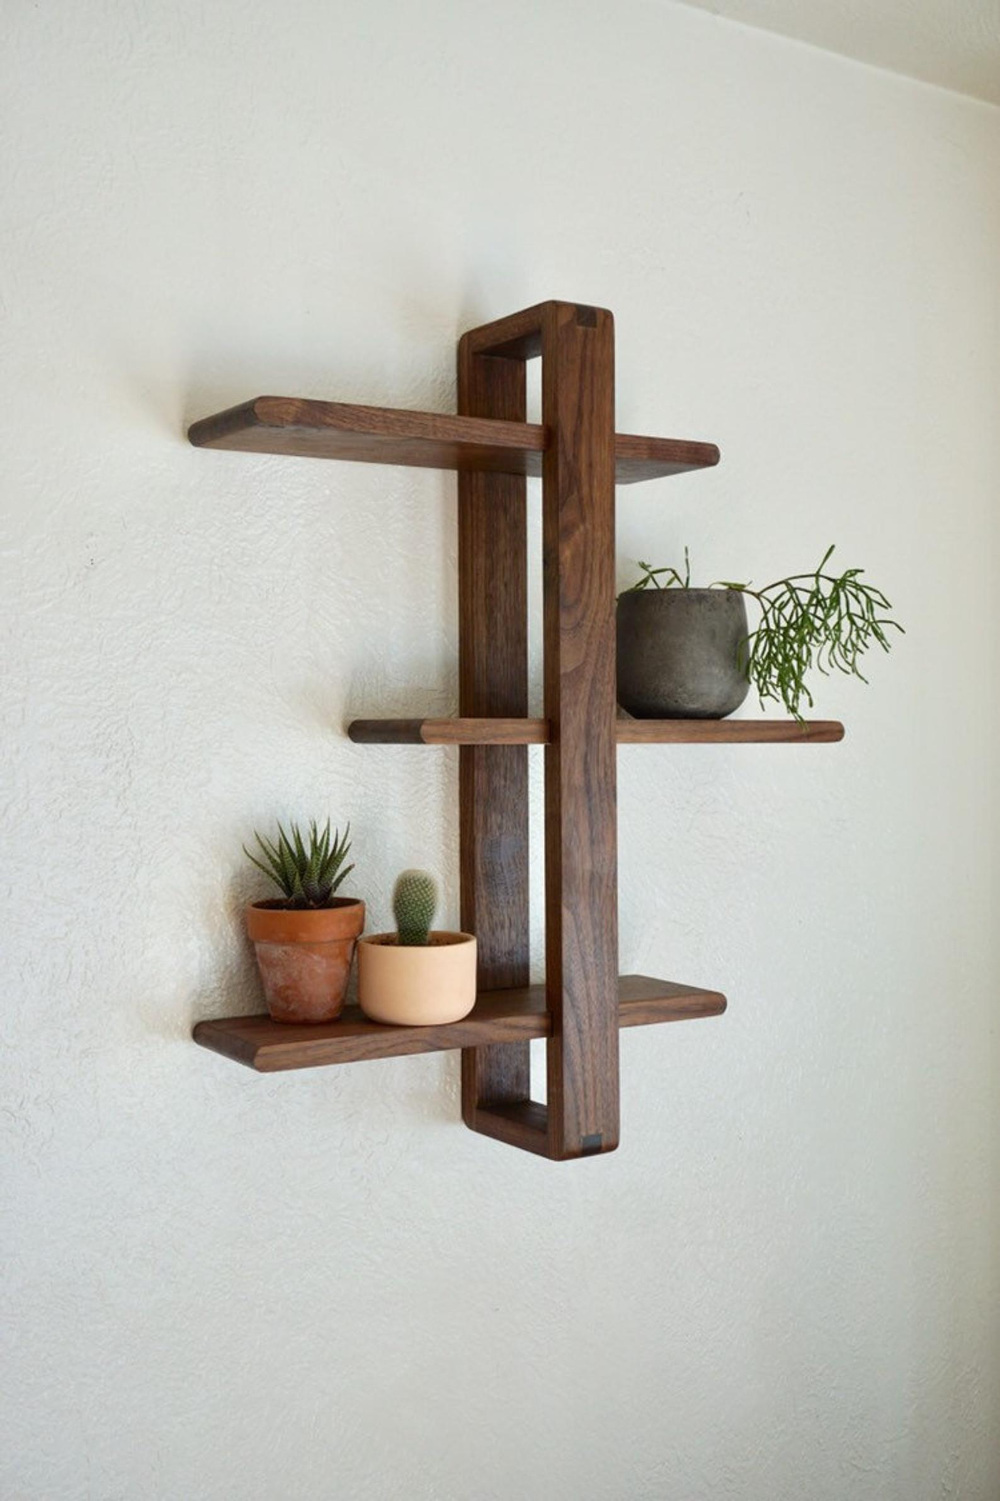 Shift Shelf Modern Wall Shelf Solid Walnut For Hanging Etsy In 2020 Modern Wall Shelf Wall Shelves Design Modern Shelving